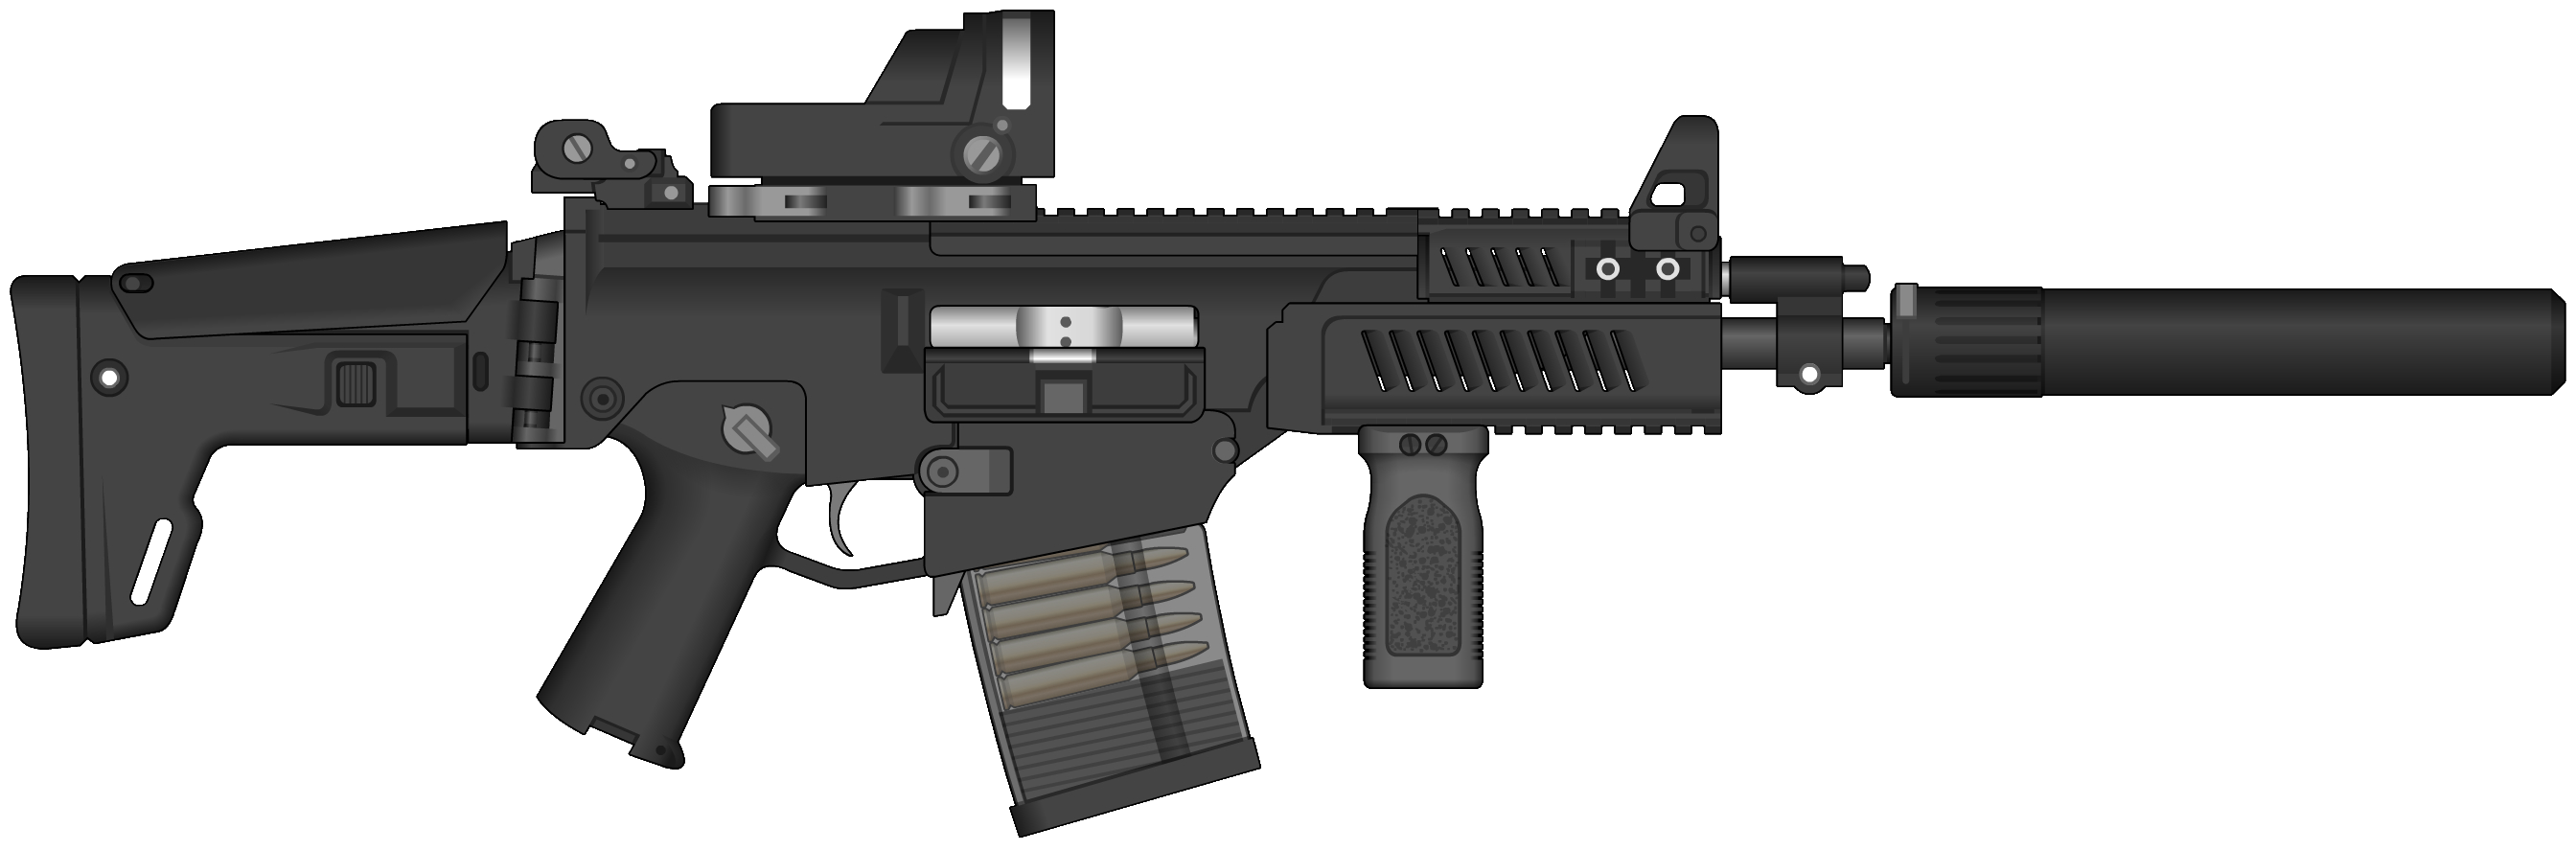 intervention rifle png